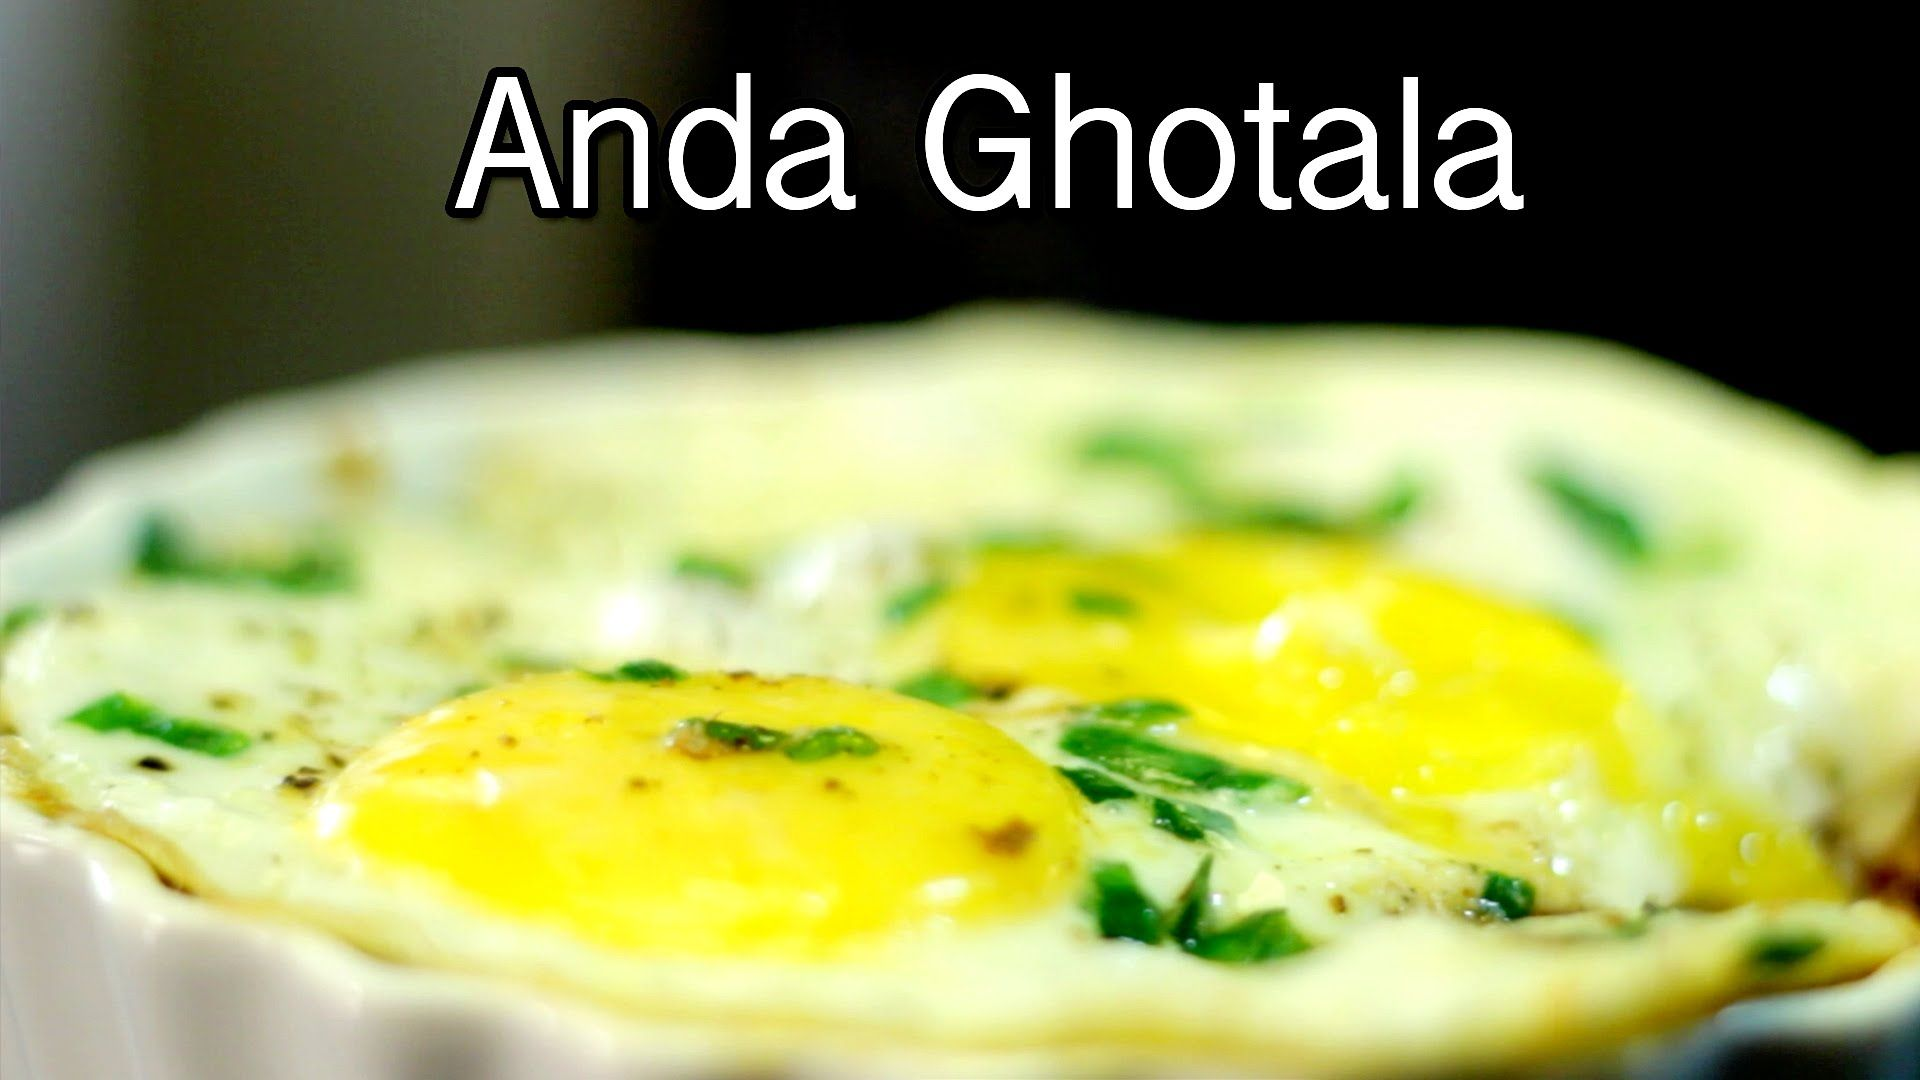 How to make eggs ghotala quick easy recipes chef saransh food forumfinder Image collections